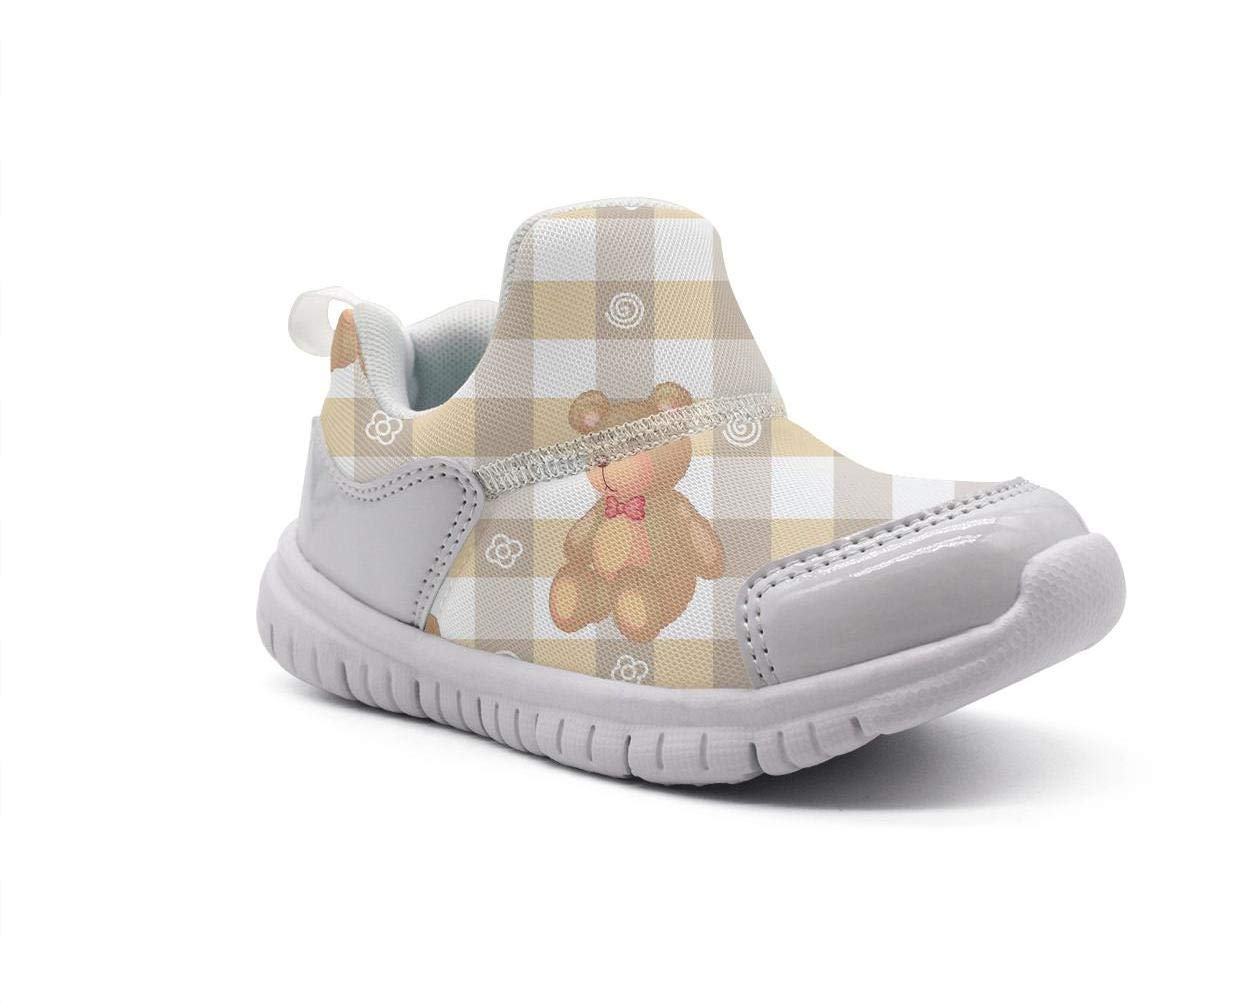 ONEYUAN Children a Teddy Bear with Kids Kid Casual Lightweight Sport Shoes Sneakers Walking Athletic Shoes